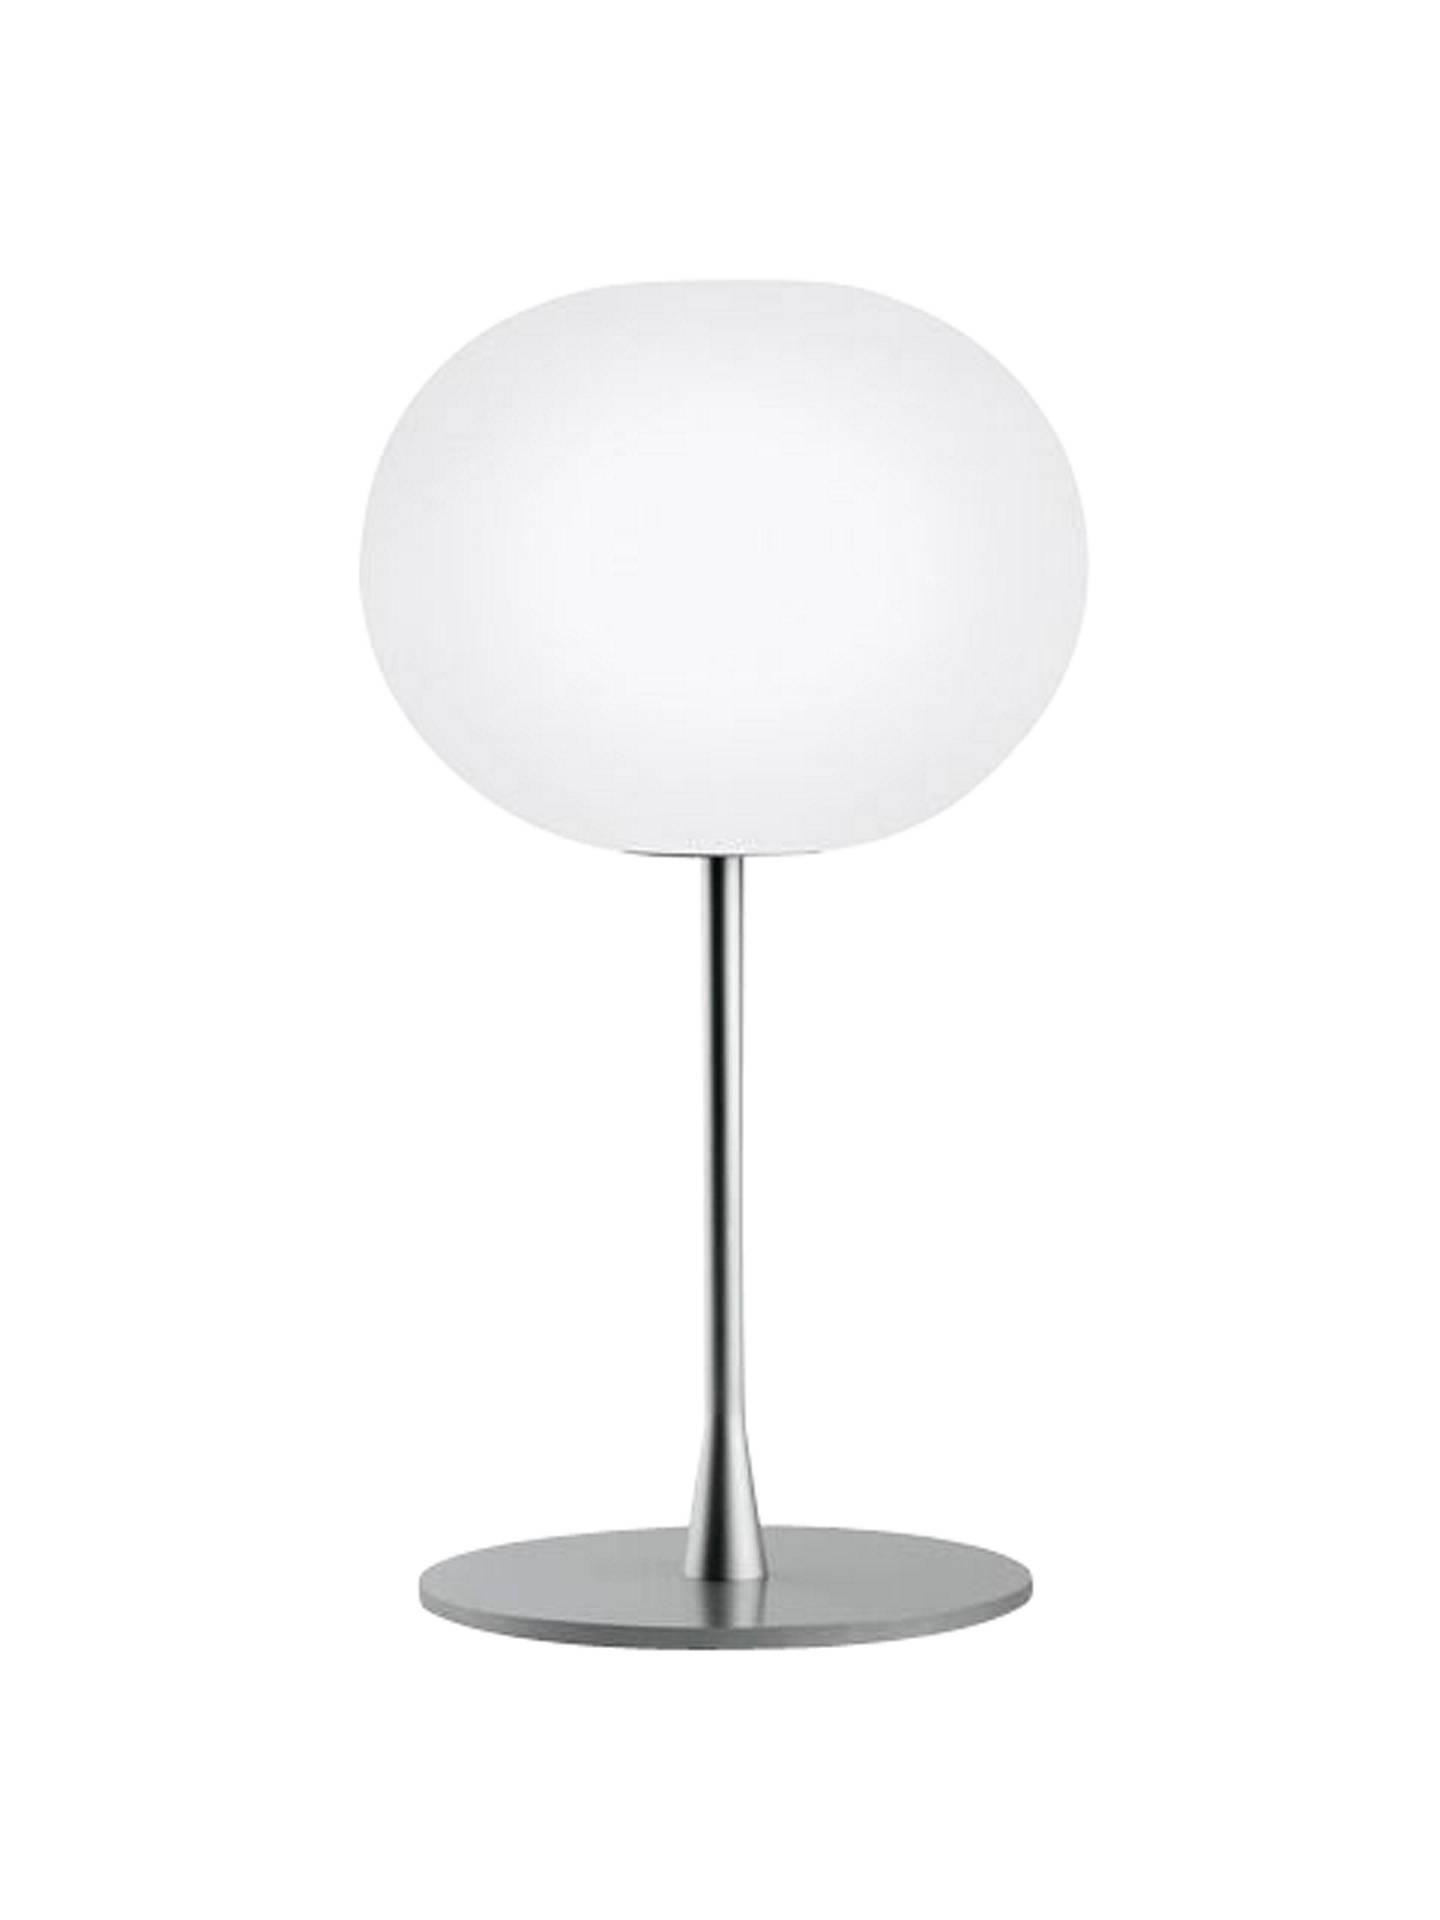 BuyFlos Glo-Ball T1 Table Lamp Online at johnlewis.com